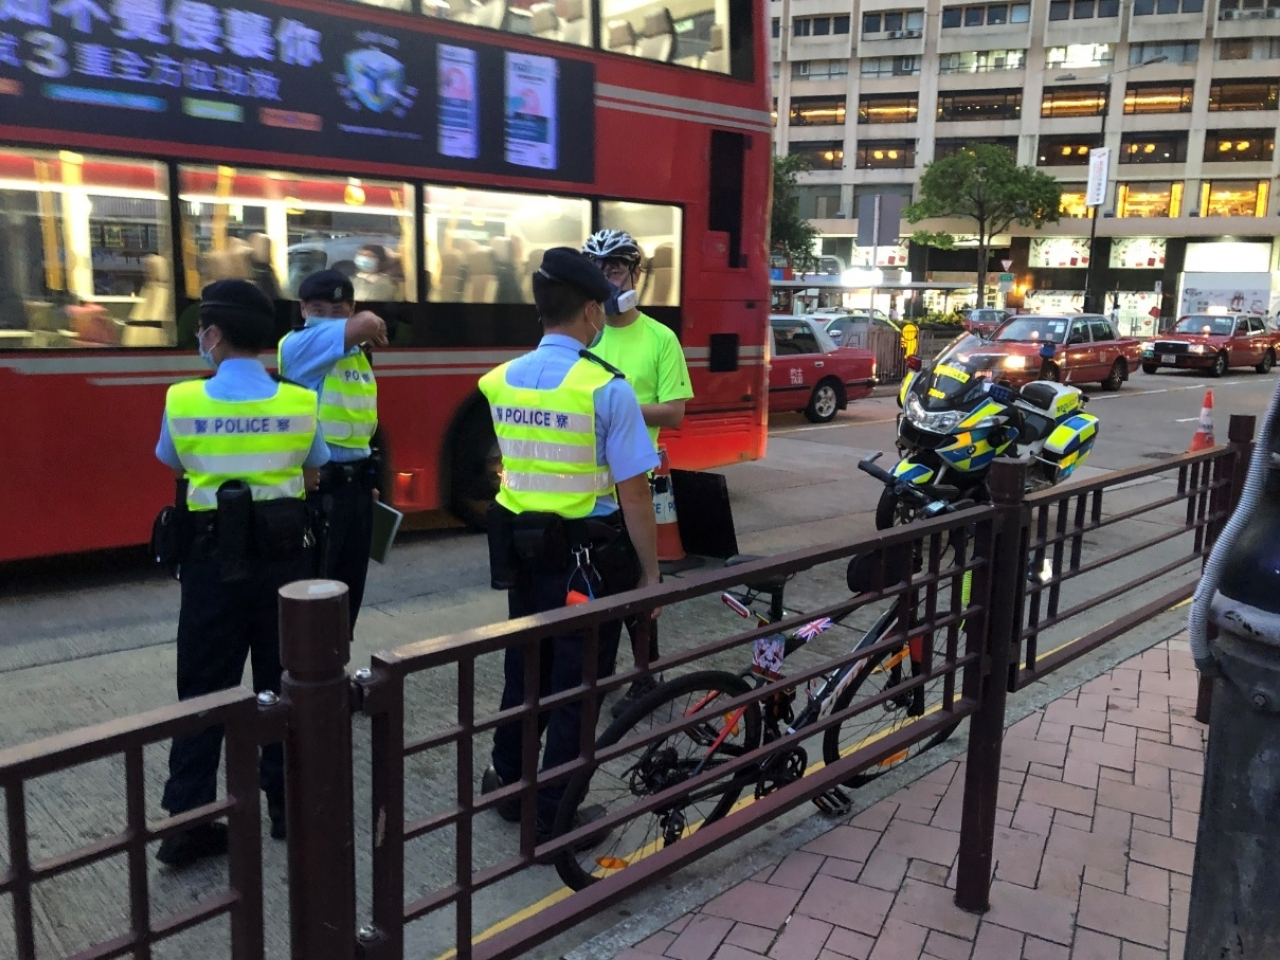 According to the Hong Kong Cycling Alliance, 15 cyclists turned up for the 'Ride of Silence', and there was a very heavy police presence with around 60 officers at Tsim Sha Tsui. Photo supplied by Transit Jam